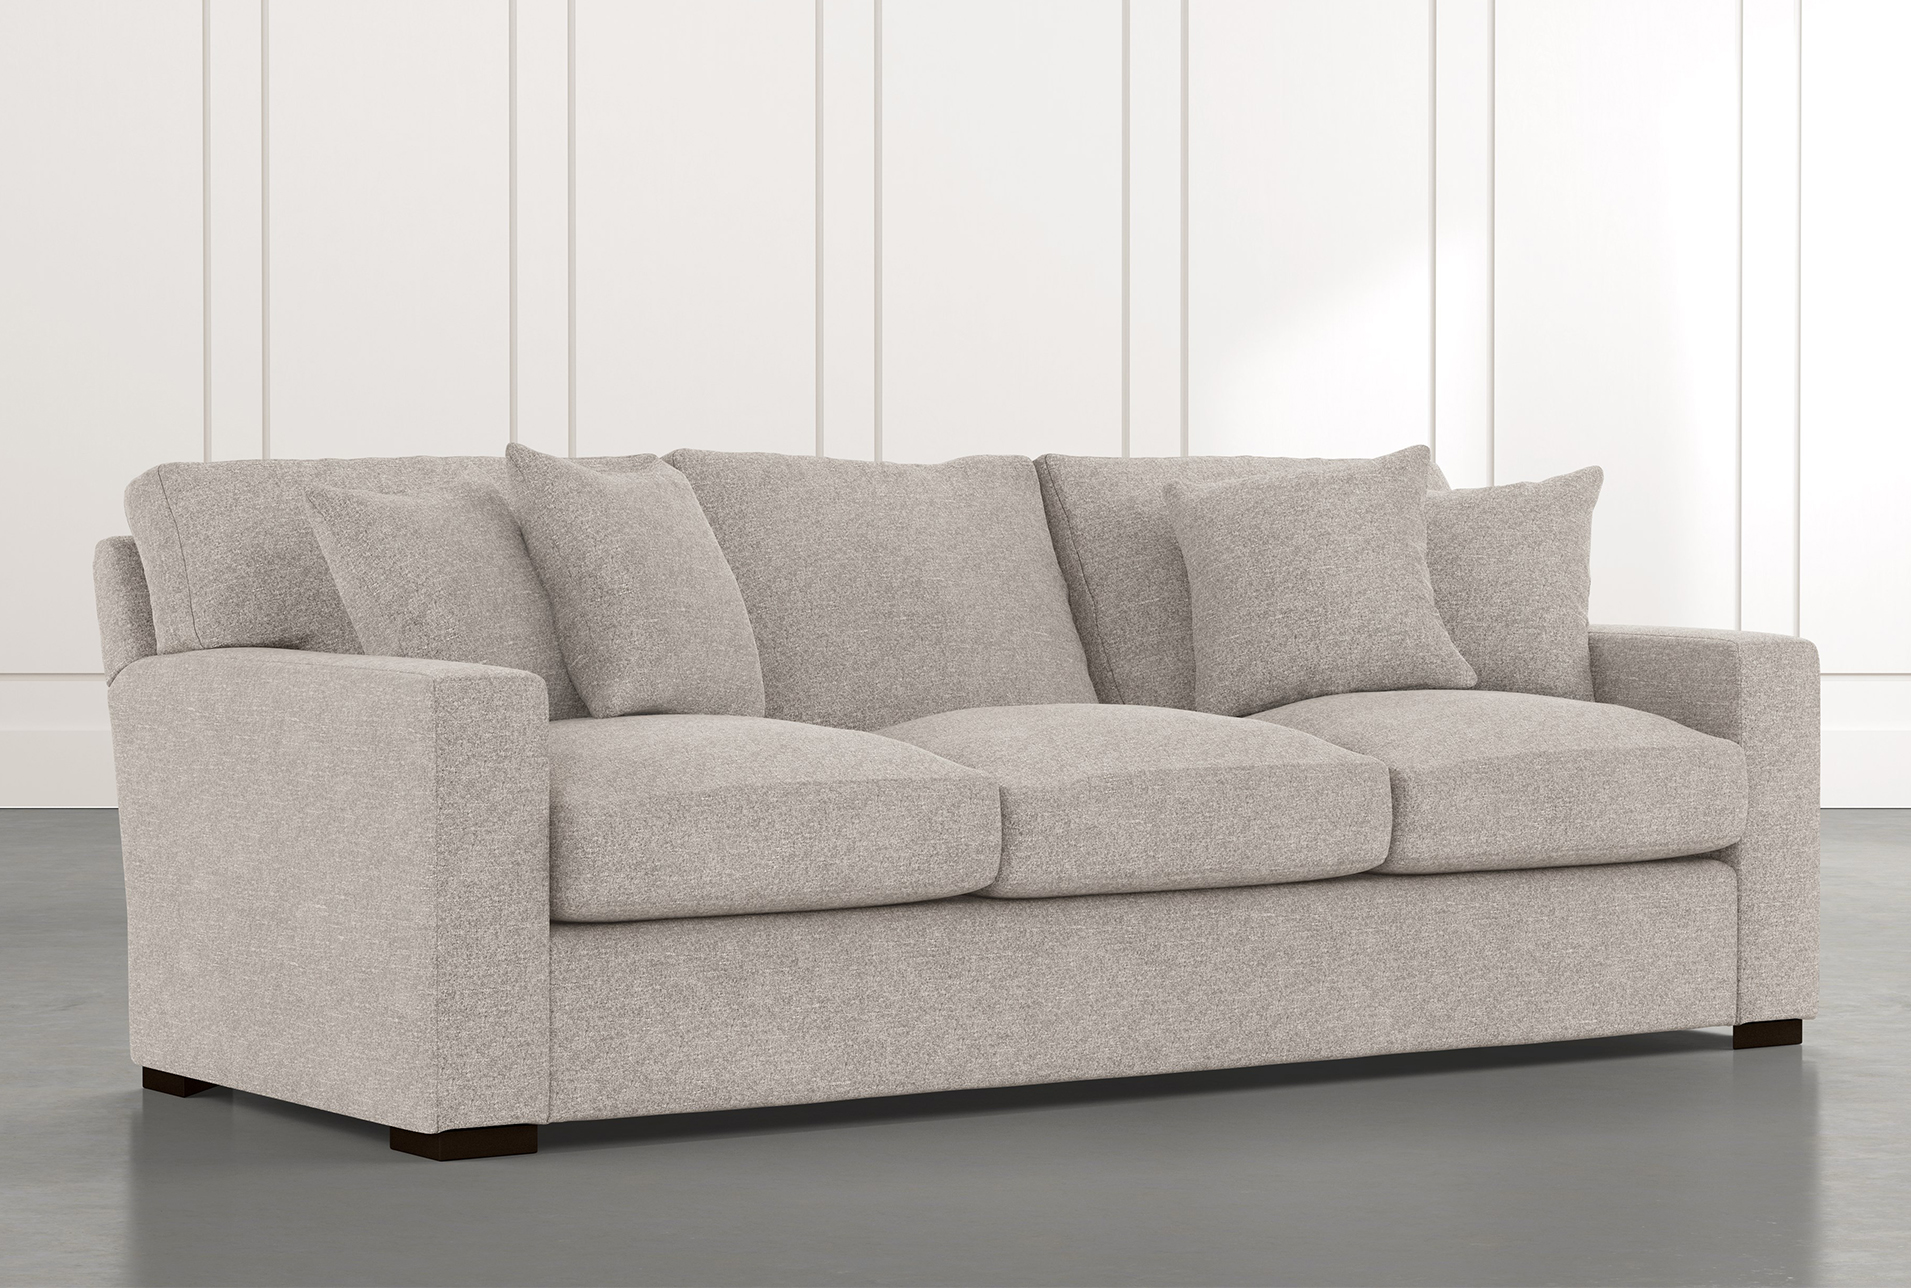 Mercer Foam Ii Light Grey Sofa 695 Gray Sofa Sofa Sectional